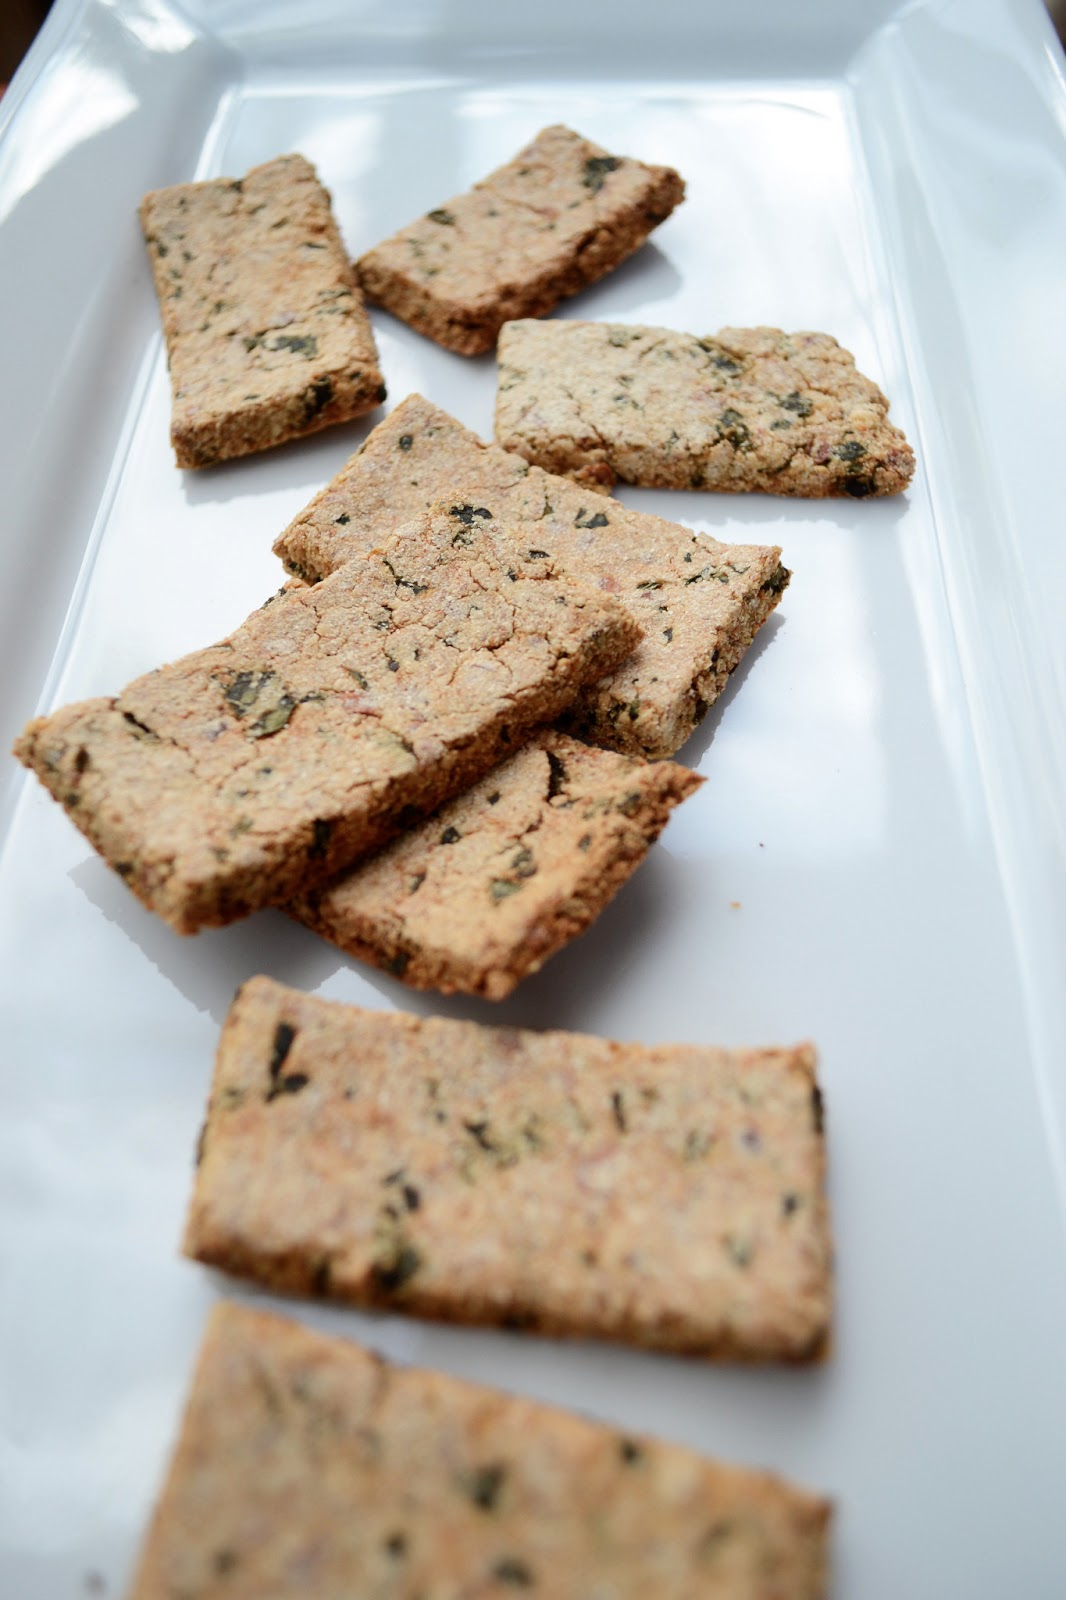 vegan cheezy kale crackers for healthy snacks, grain and gluten free